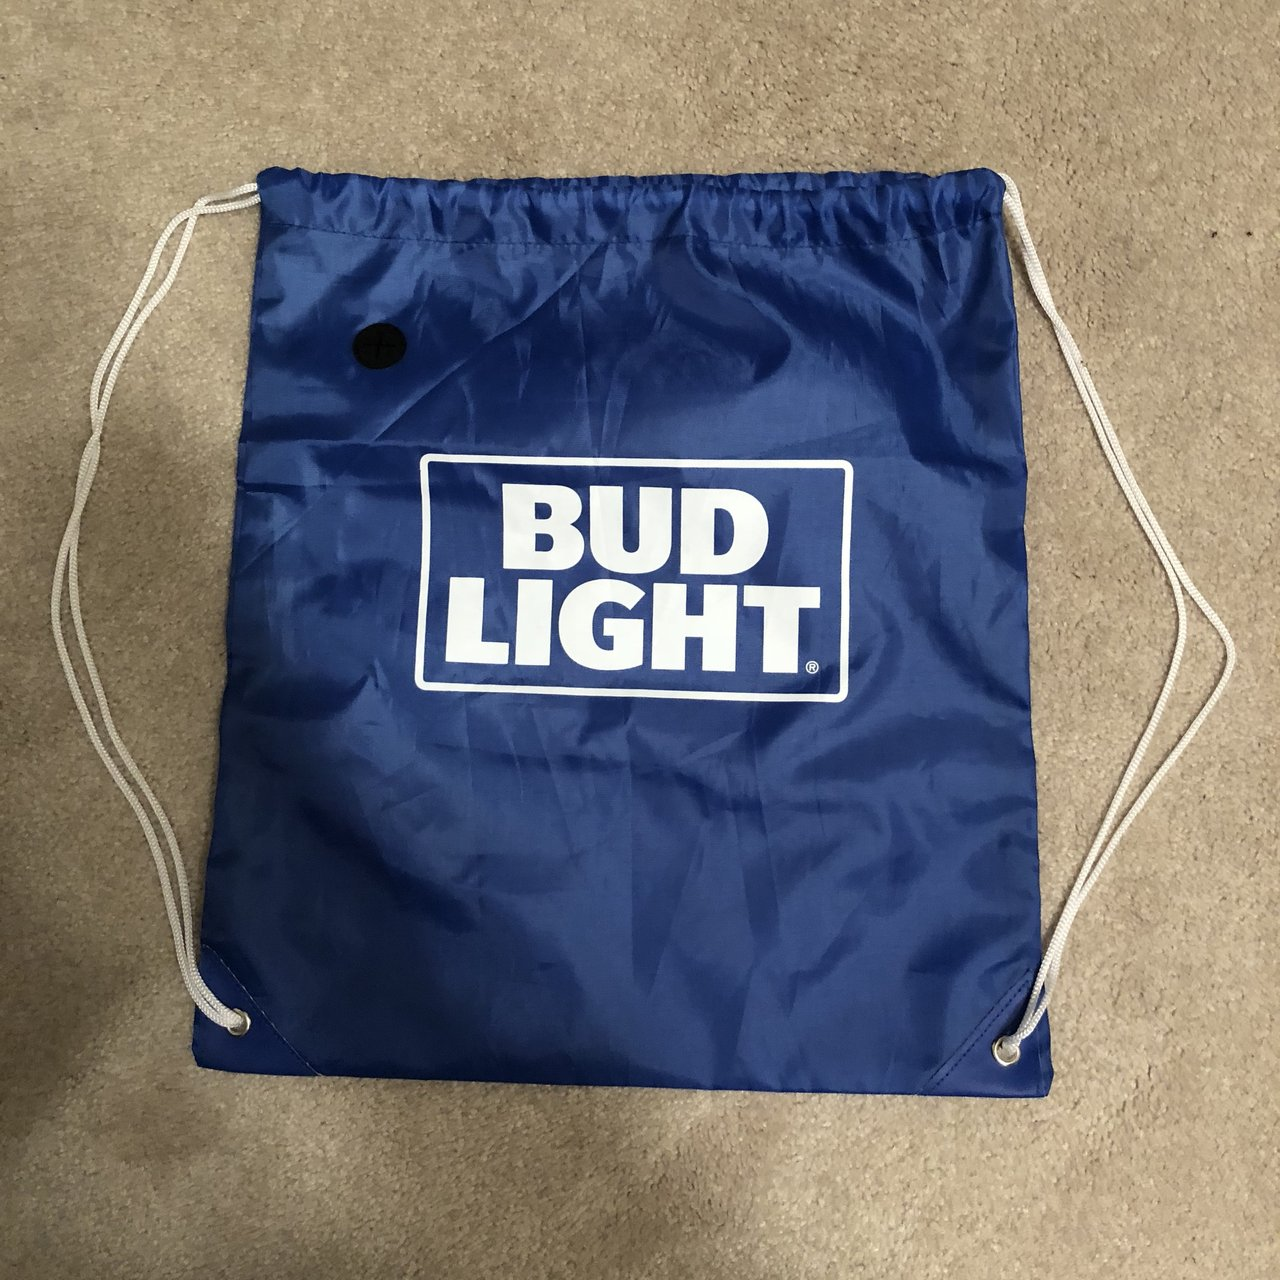 Bud Light Drawstring Bag Has Zipper Pocket Facing Your Back Depop